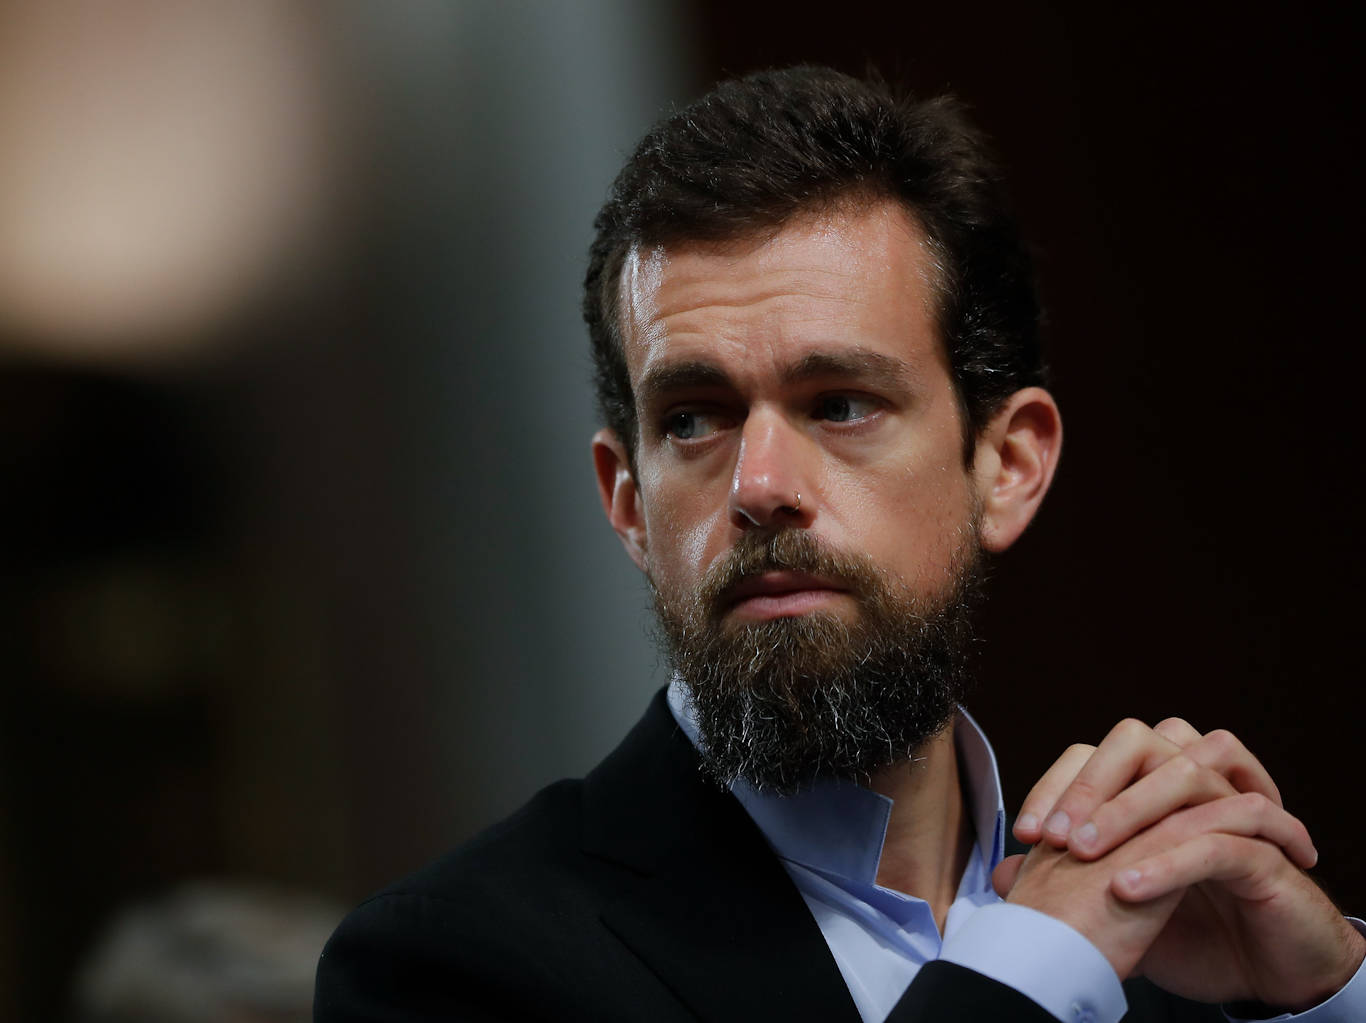 Twitter CEO is facing fire from India after a map showed Jammu and Kashmir as part of China